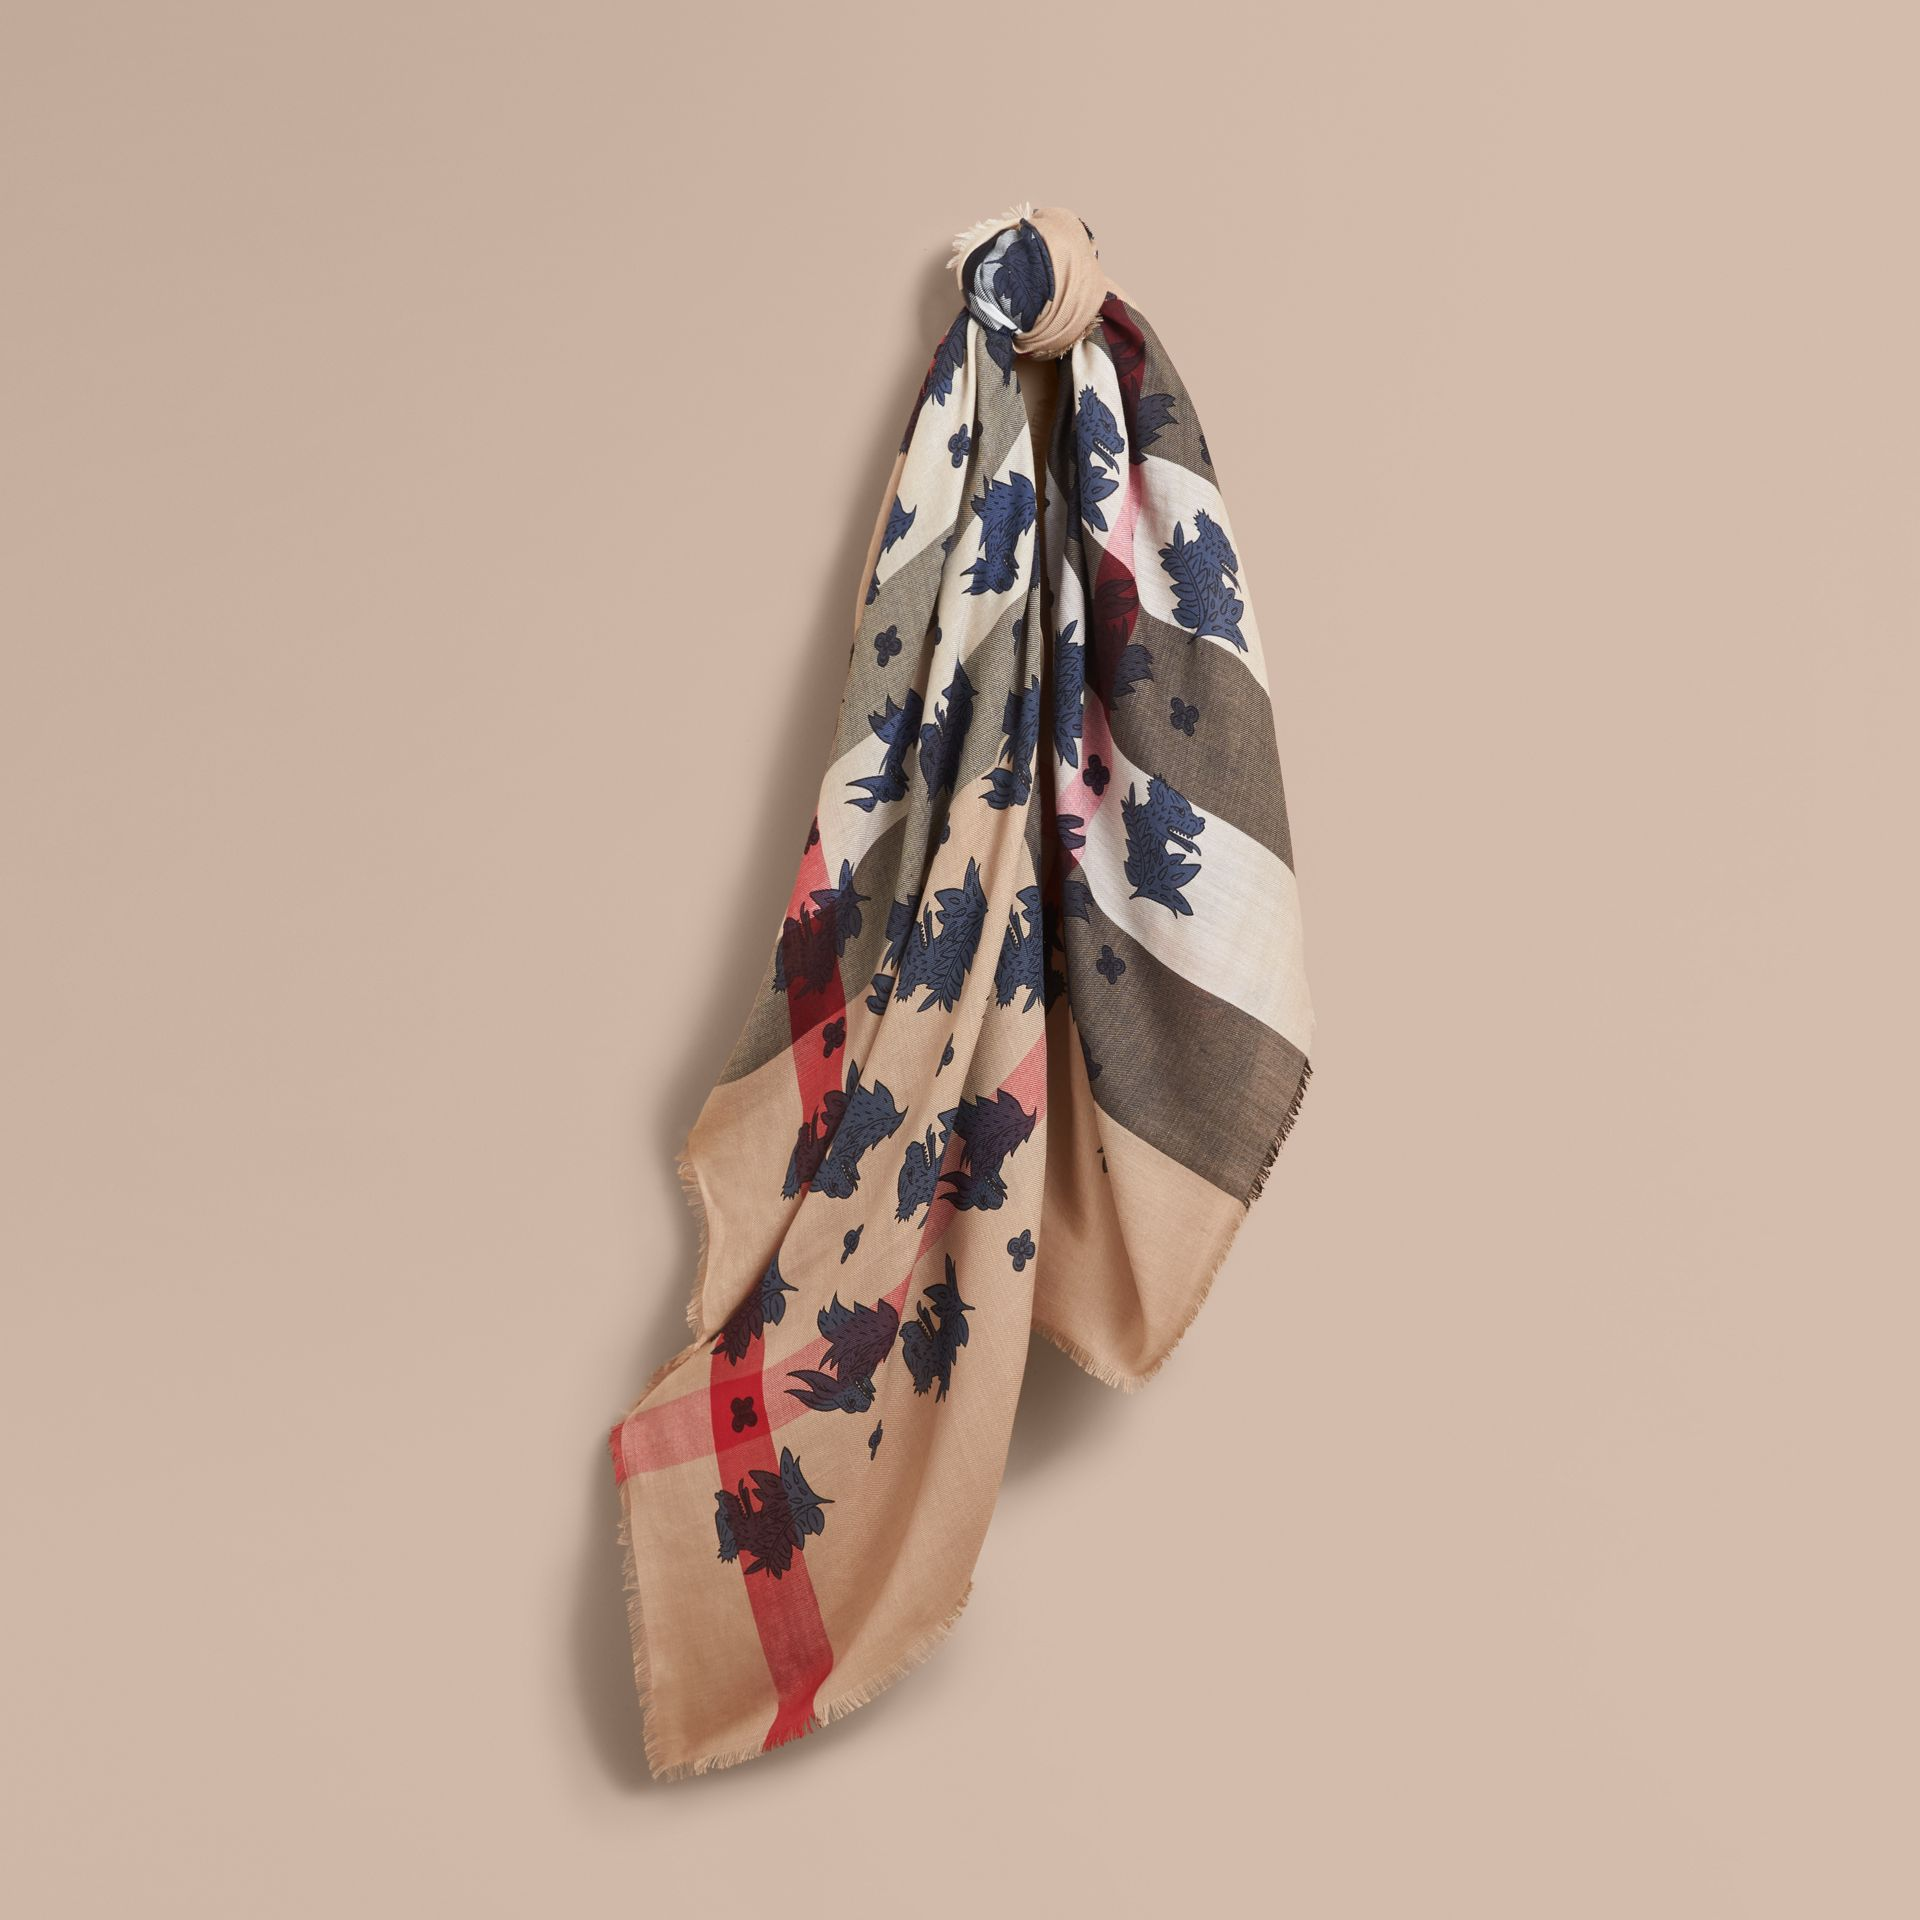 Beasts Print and Check Silk Wool Blend Square Scarf in Camel/stone Blue | Burberry Hong Kong - gallery image 1